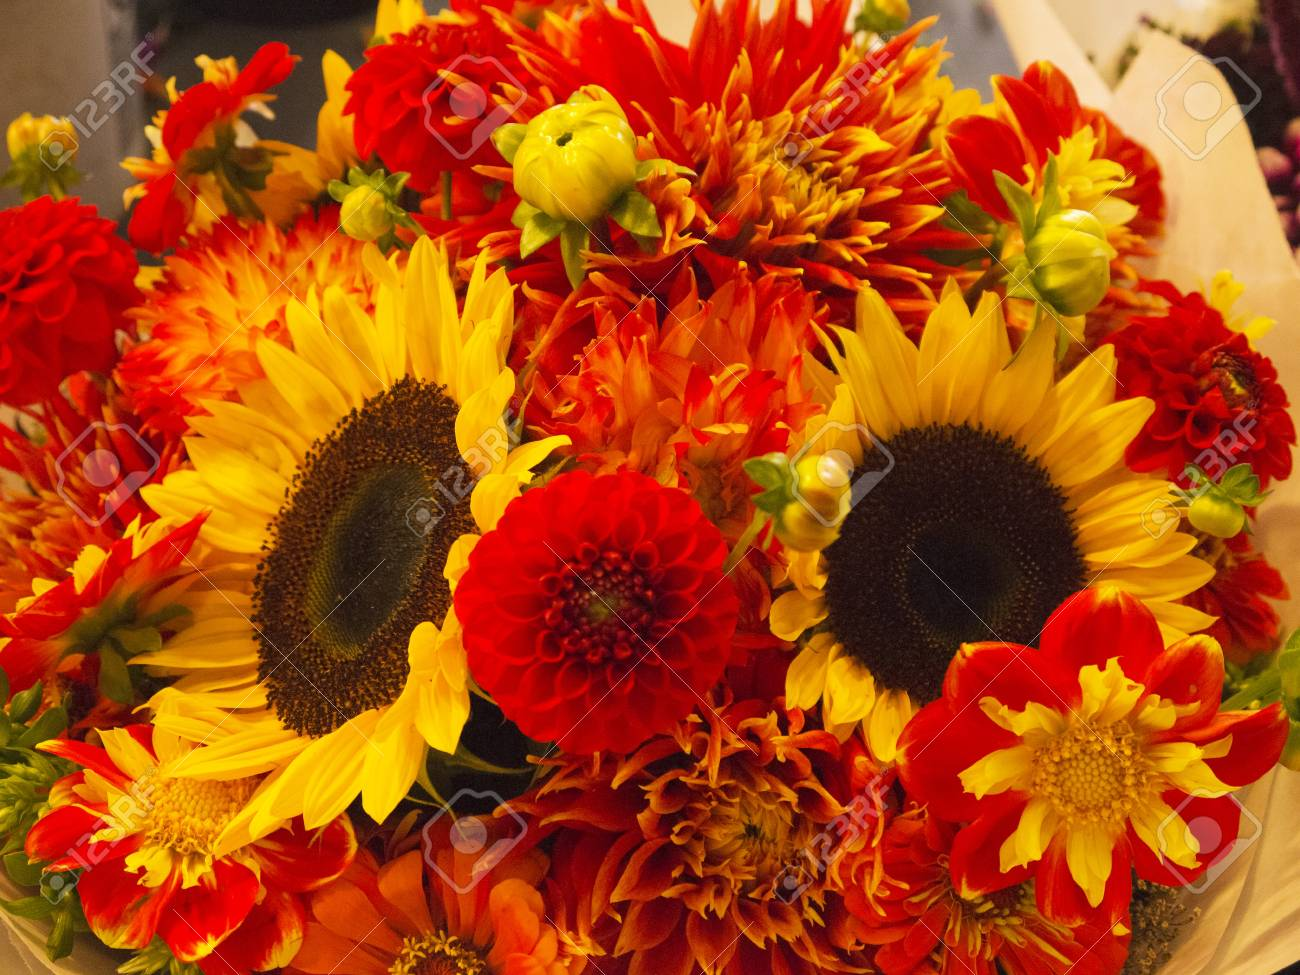 Flowers in Pike Place Farmers Market,Seattle ,Washington State USA Stock Photo - 17201645